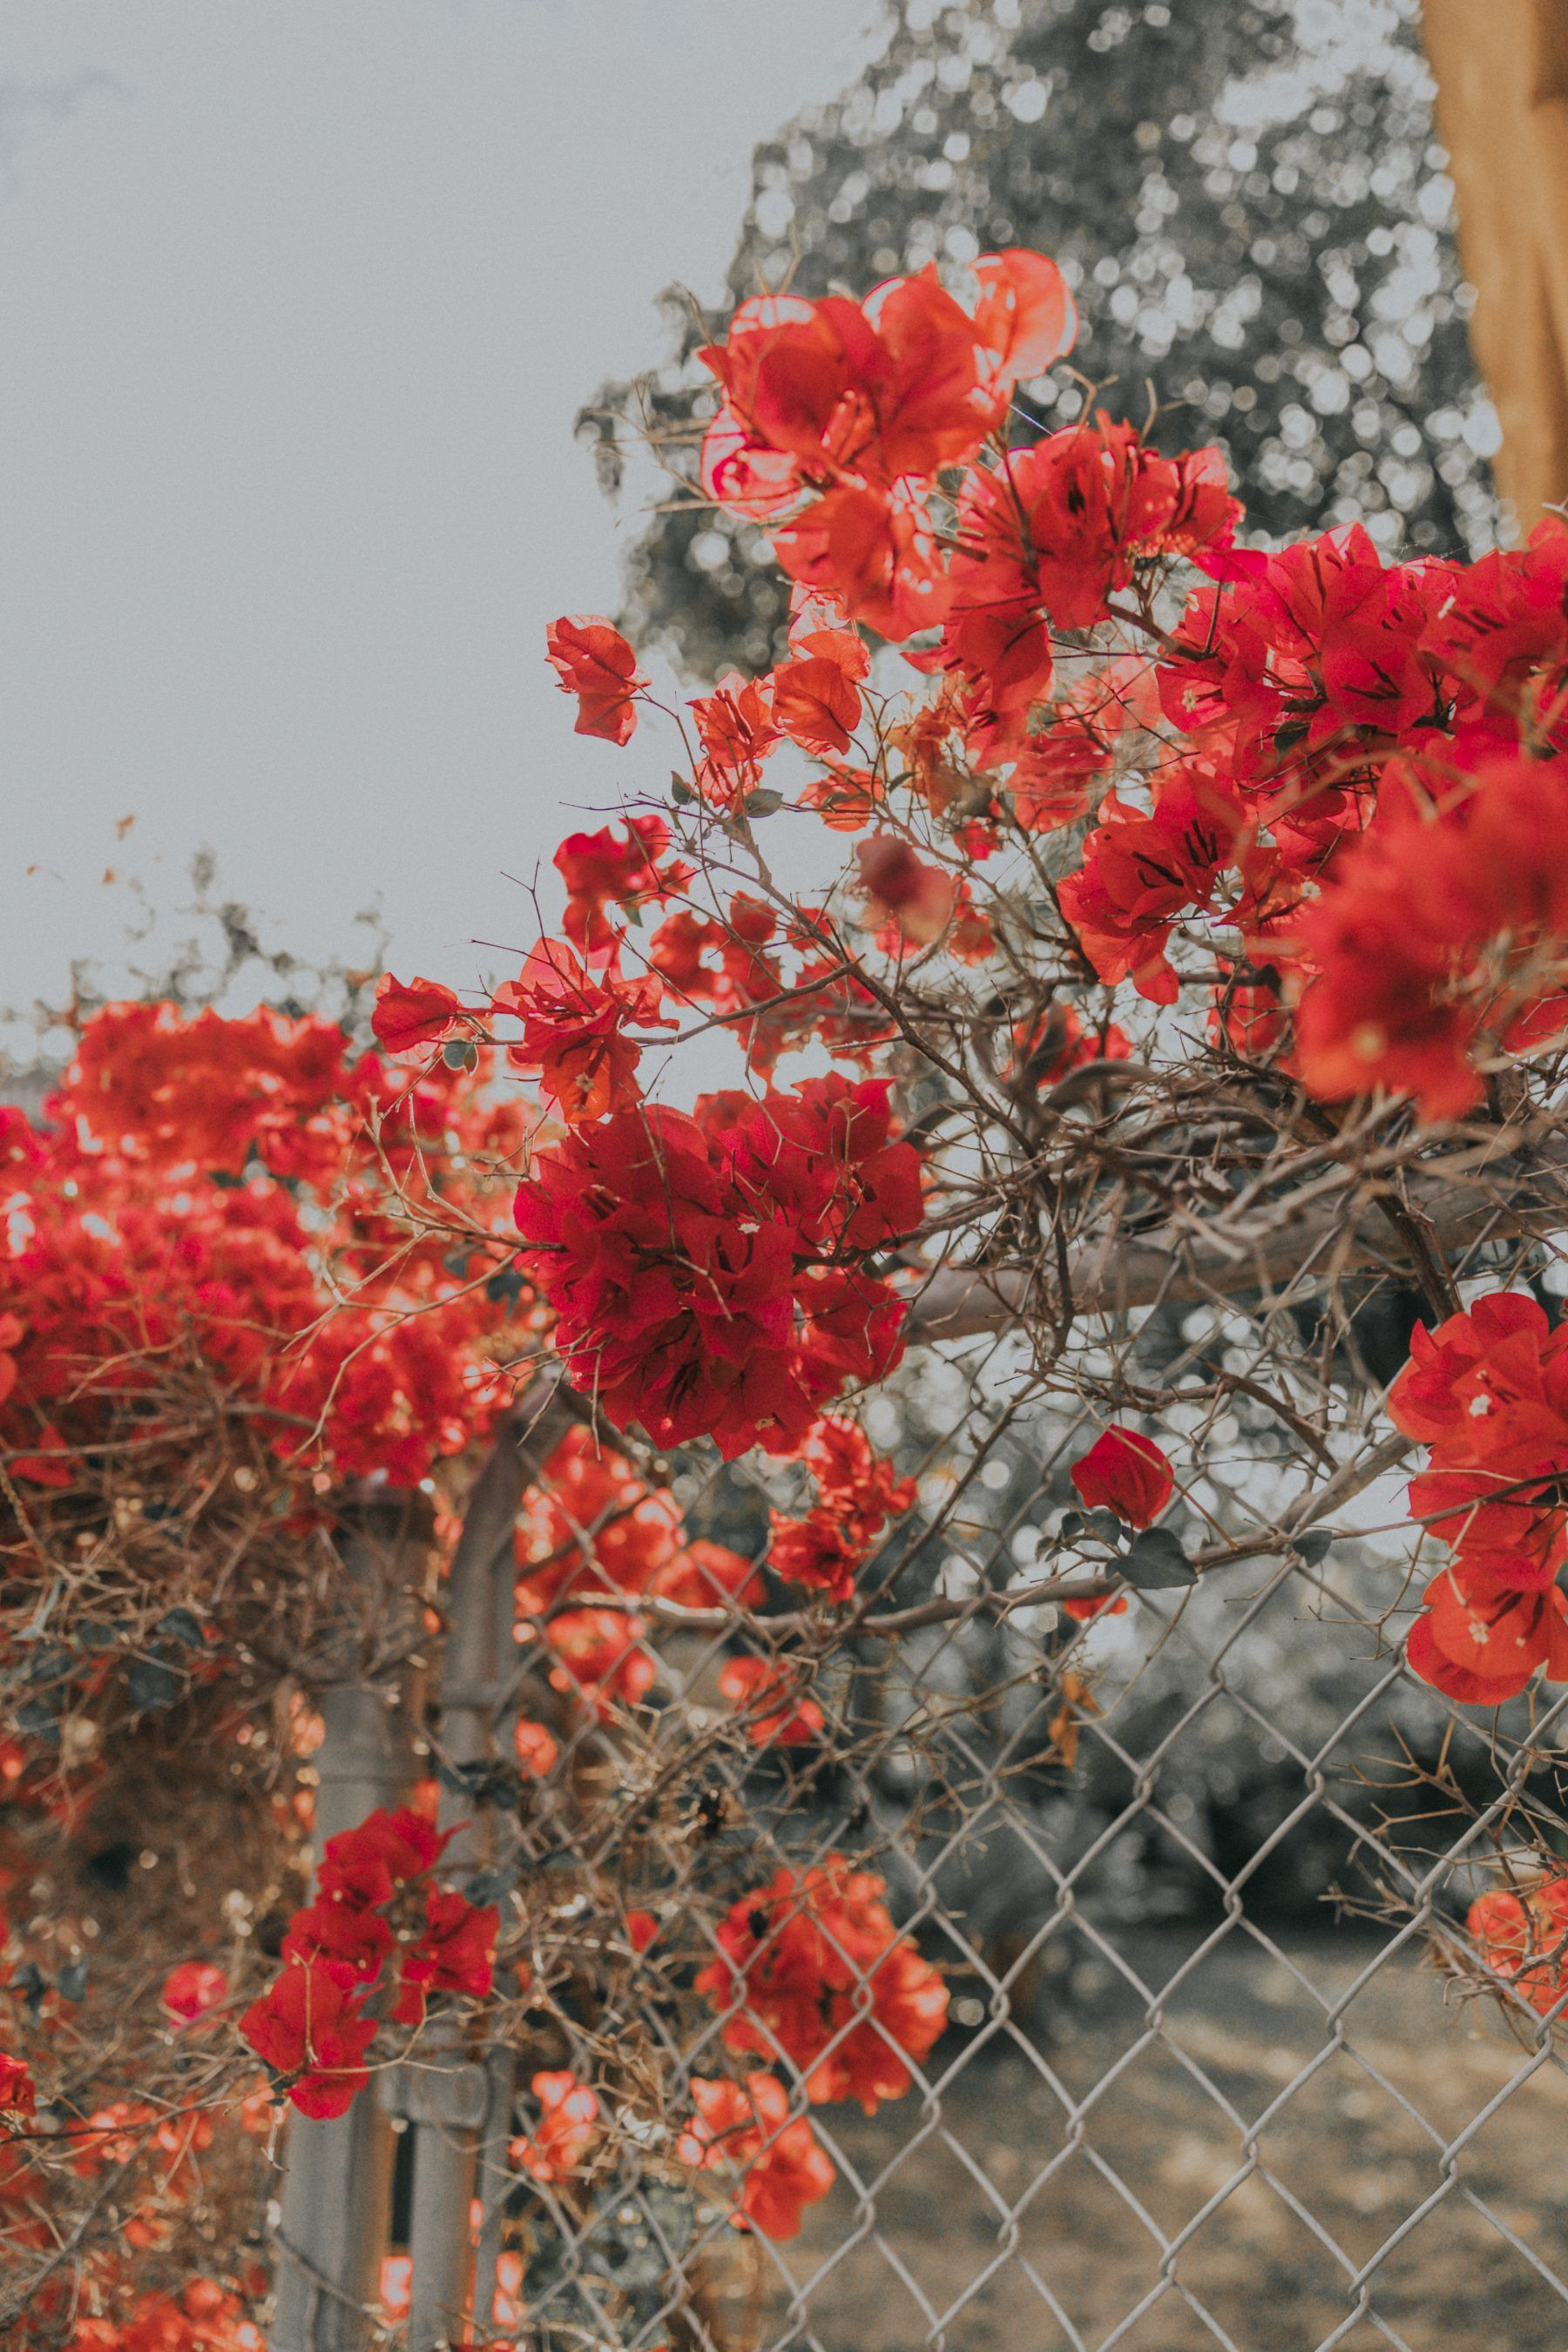 Hd wallpapers and background images Flowers Everywhere | Collage Vintage | Flower aesthetic ...